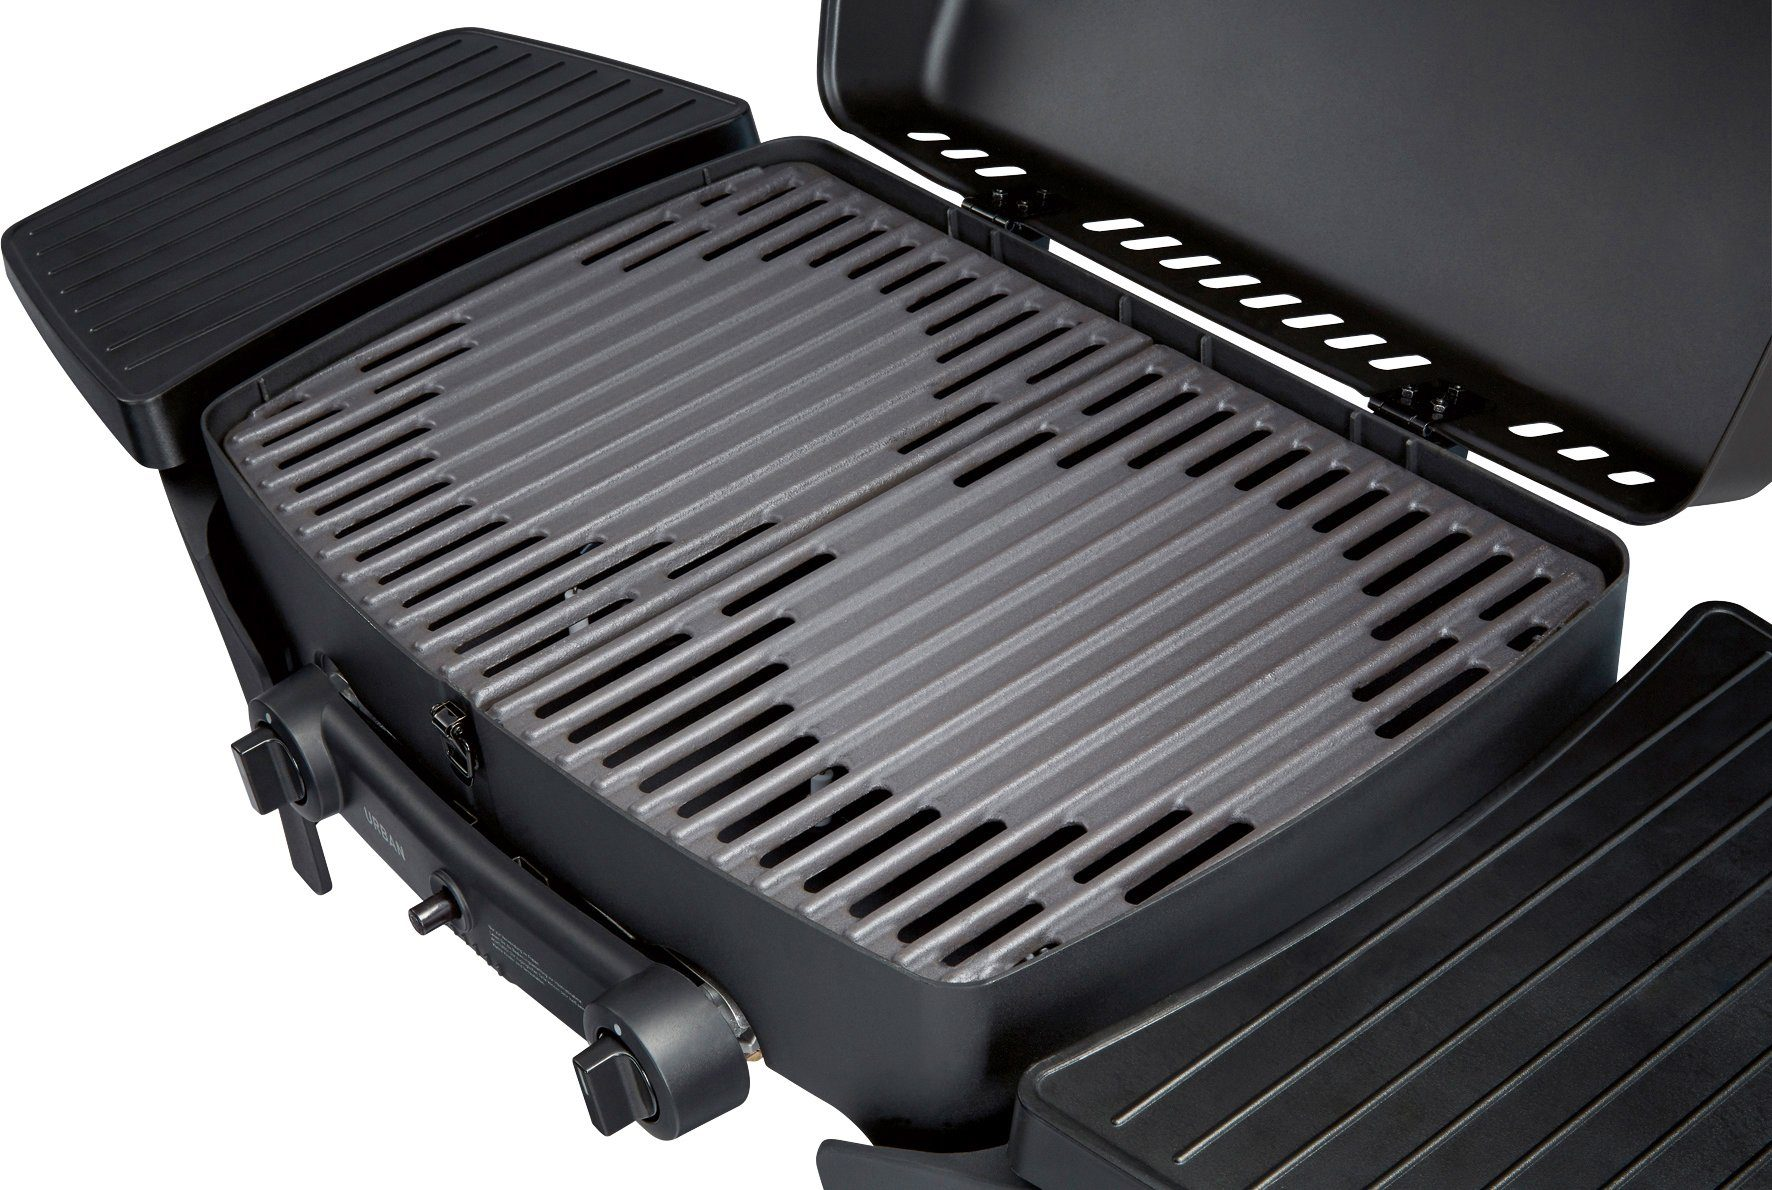 Enders Gasgrill Kansas Pro 3 Sik Turbo : Weber gasgrill classic premium original black im vergleich